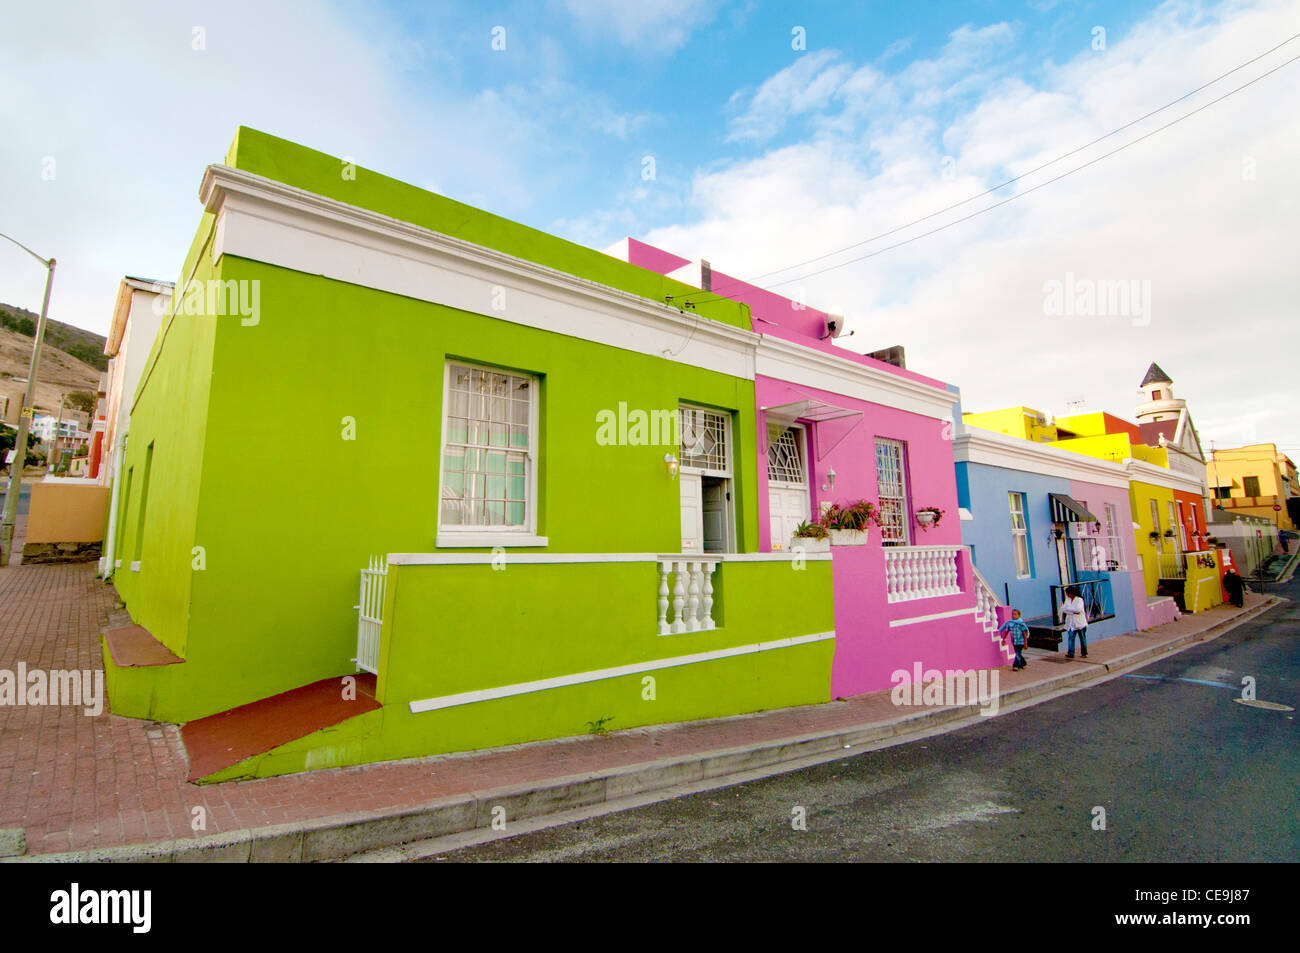 bo kaap stockfotos bo kaap bilder alamy. Black Bedroom Furniture Sets. Home Design Ideas